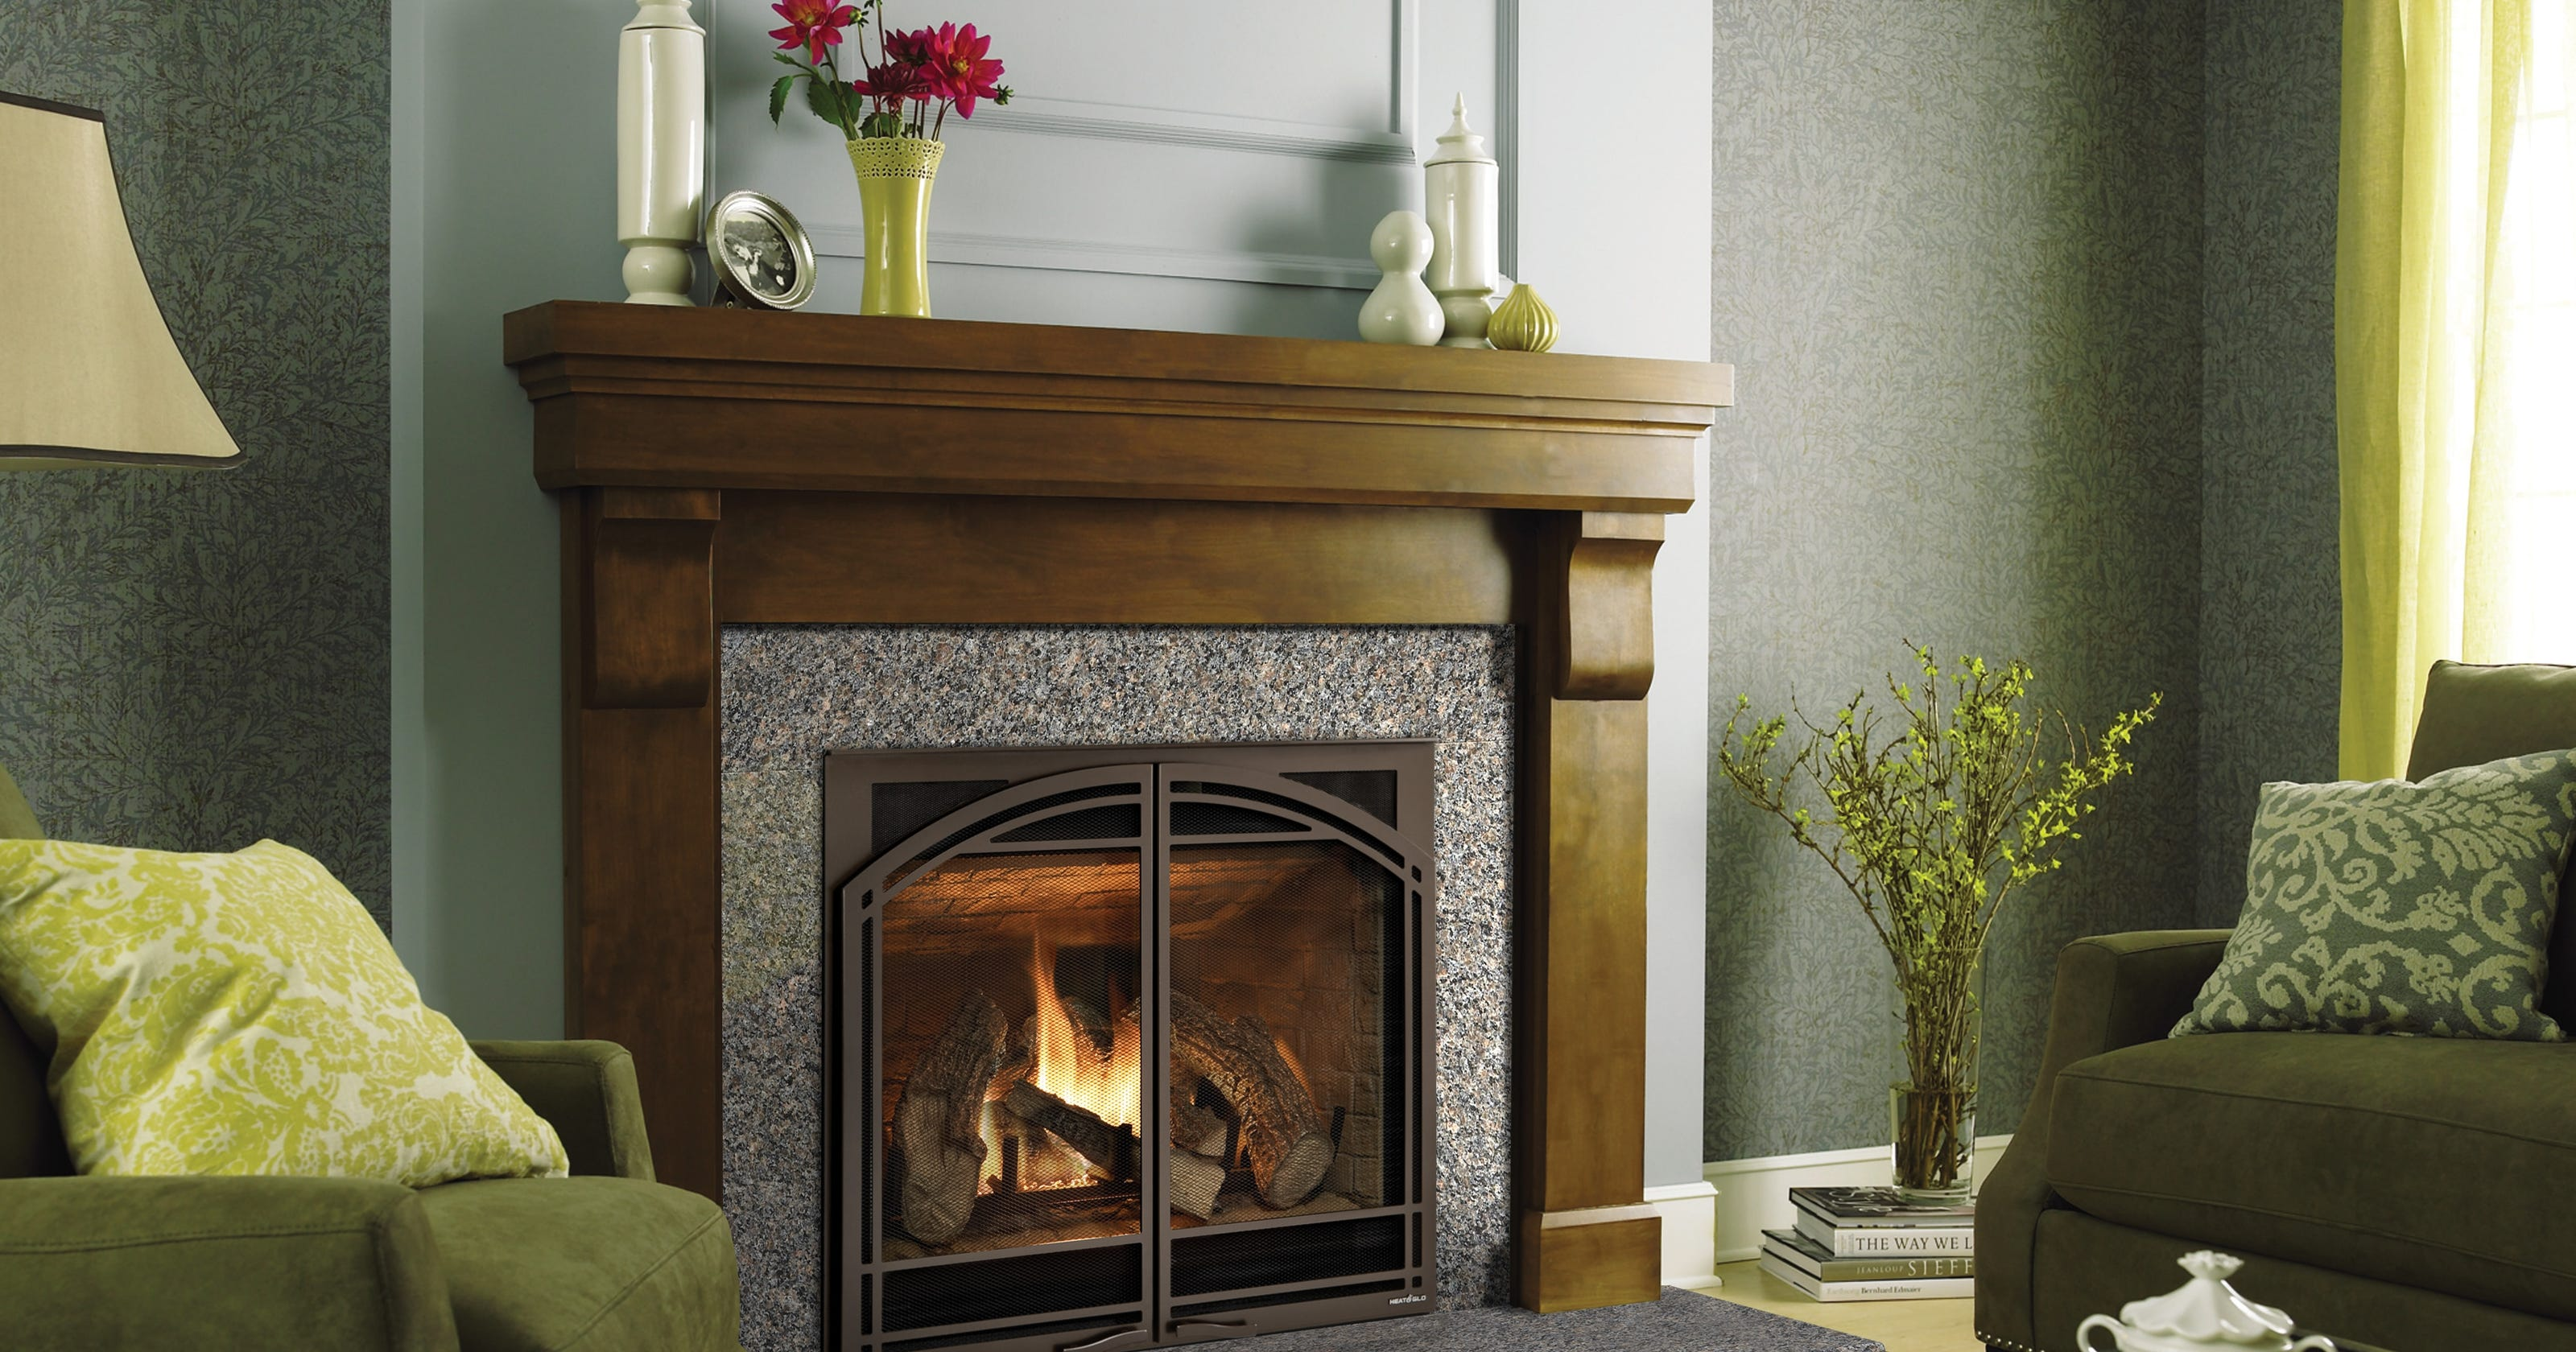 gas fireplaces to get screens to prevent burns